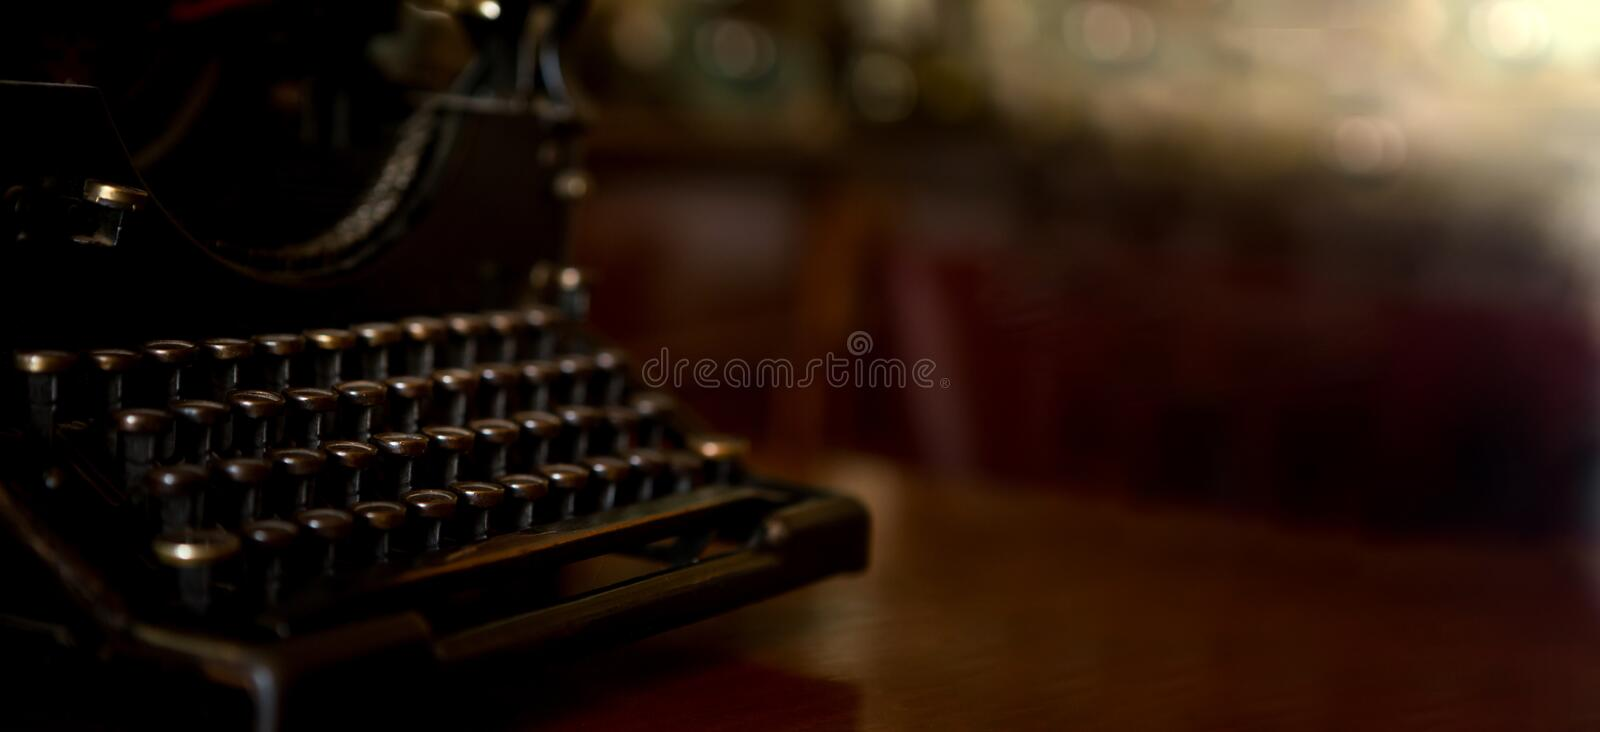 Selective focus on the keyboard key on an old black rustic typewriter on a desk in the office. The typewriter is a lot old so the stock photos